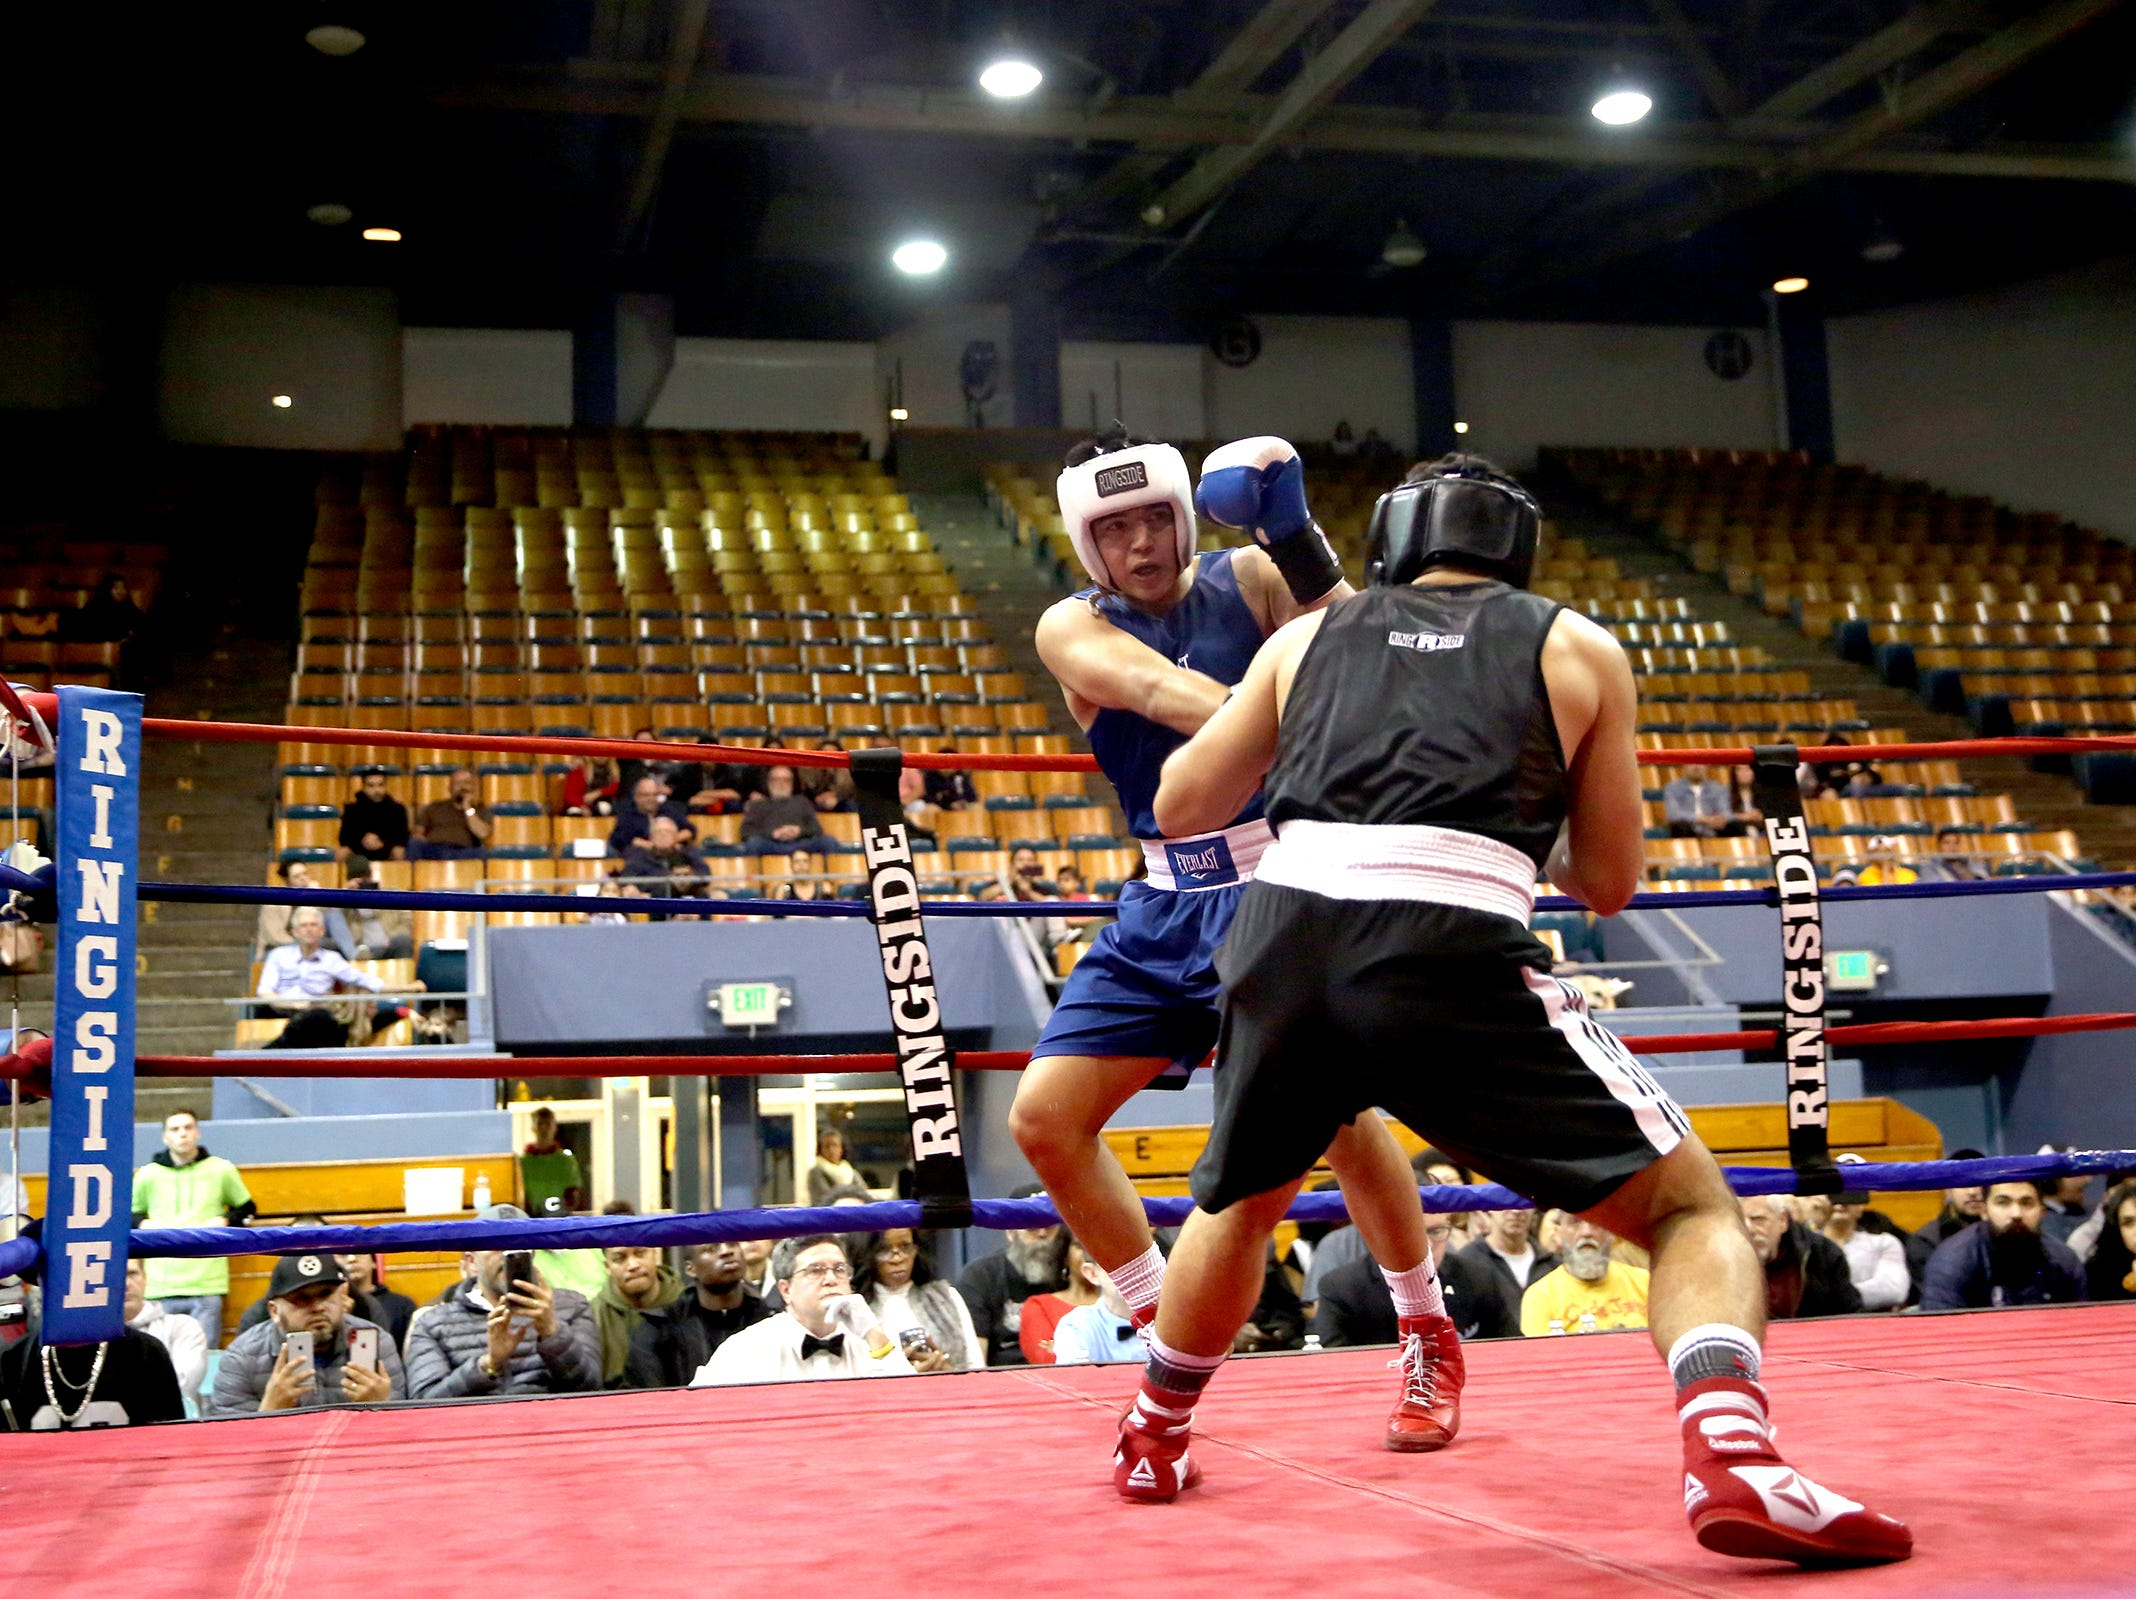 Omar Murillo of Salem takes at jab at Eduard Yanez of Grehsam at the Oregon Golden Gloves championship matches at the Salem Armory on Saturday, Feb. 2, 2019.